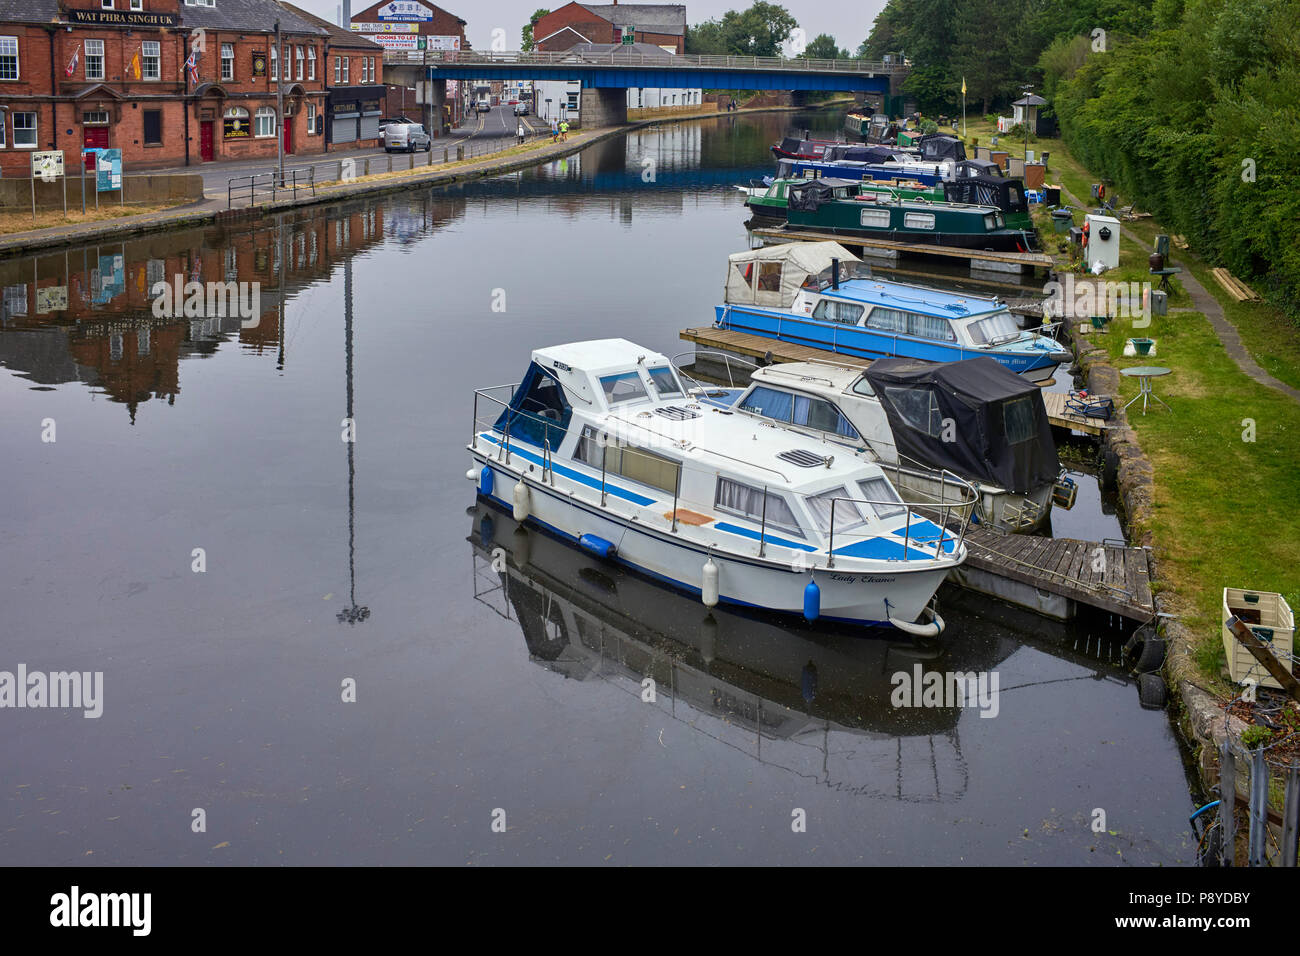 The basin end of the Bridgewater canal at Runcorn in Cheshire - Stock Image